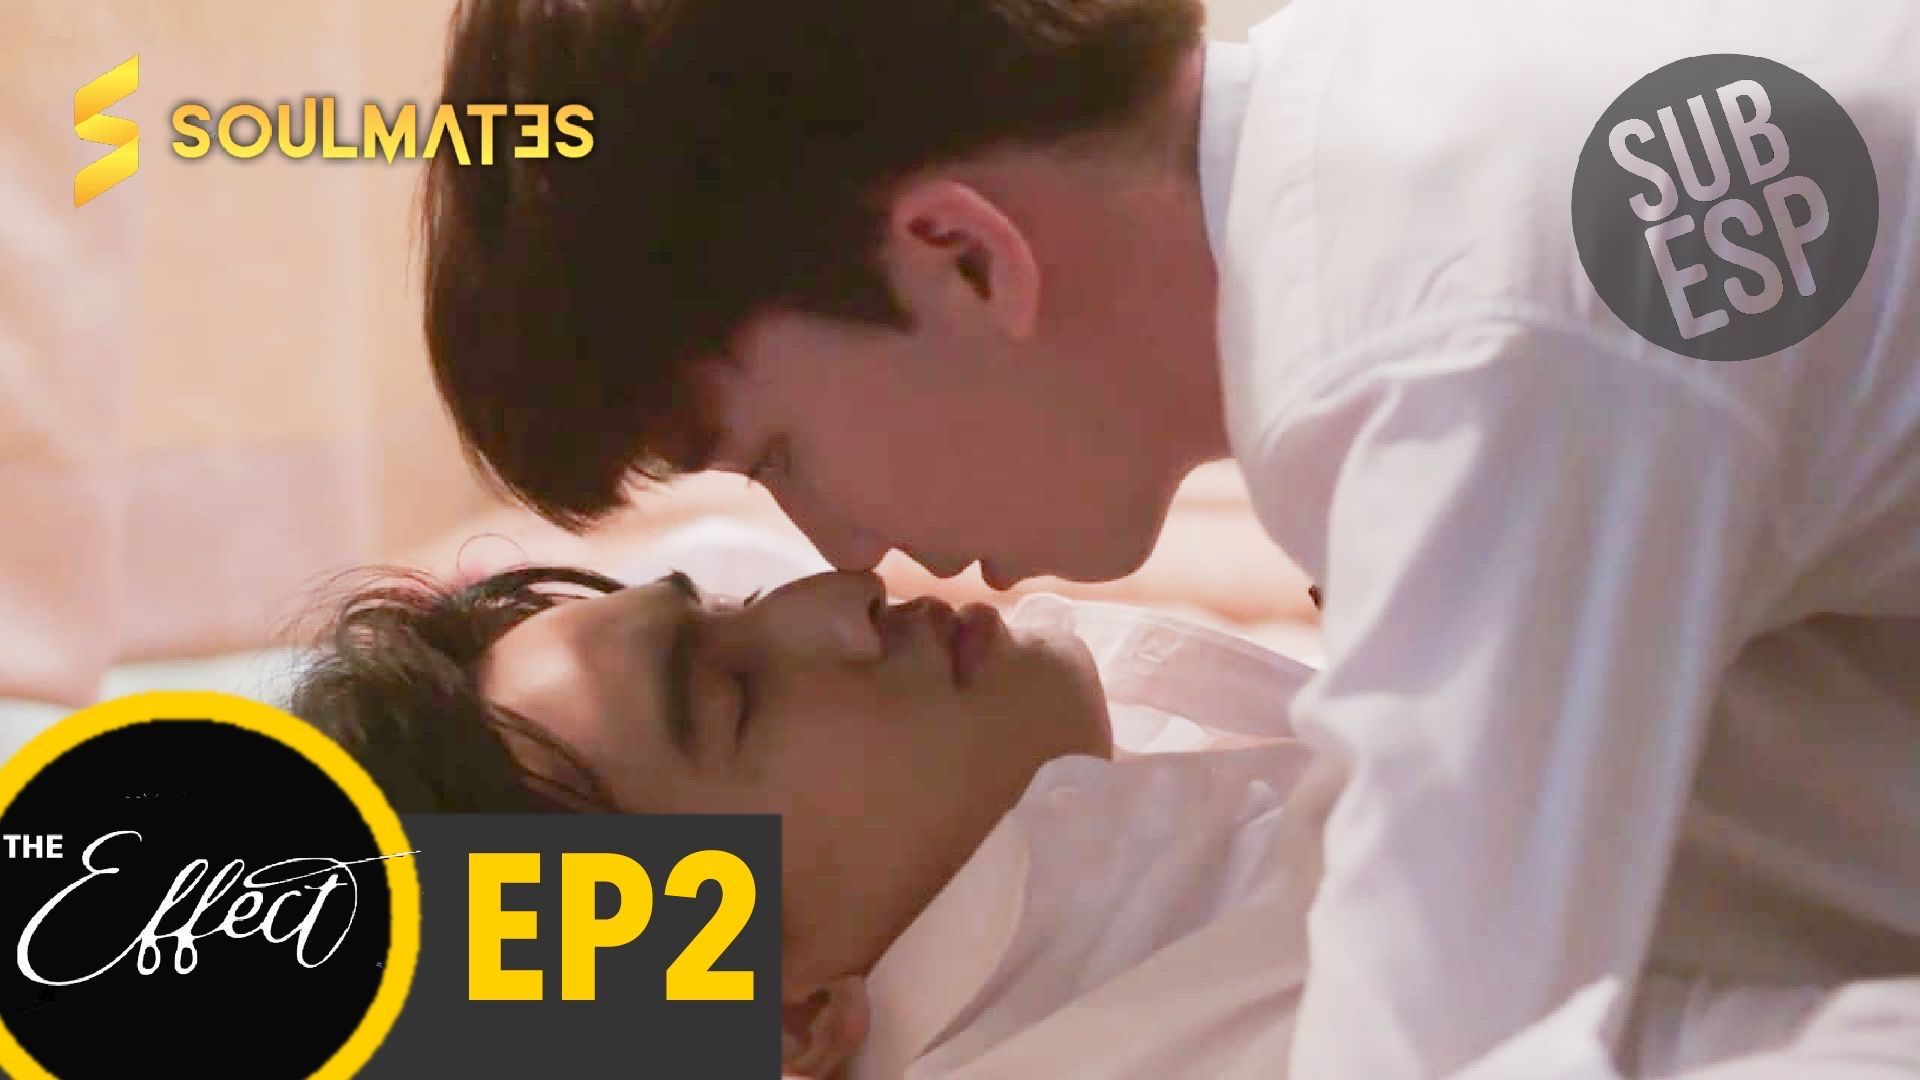 The Effect: 1×2